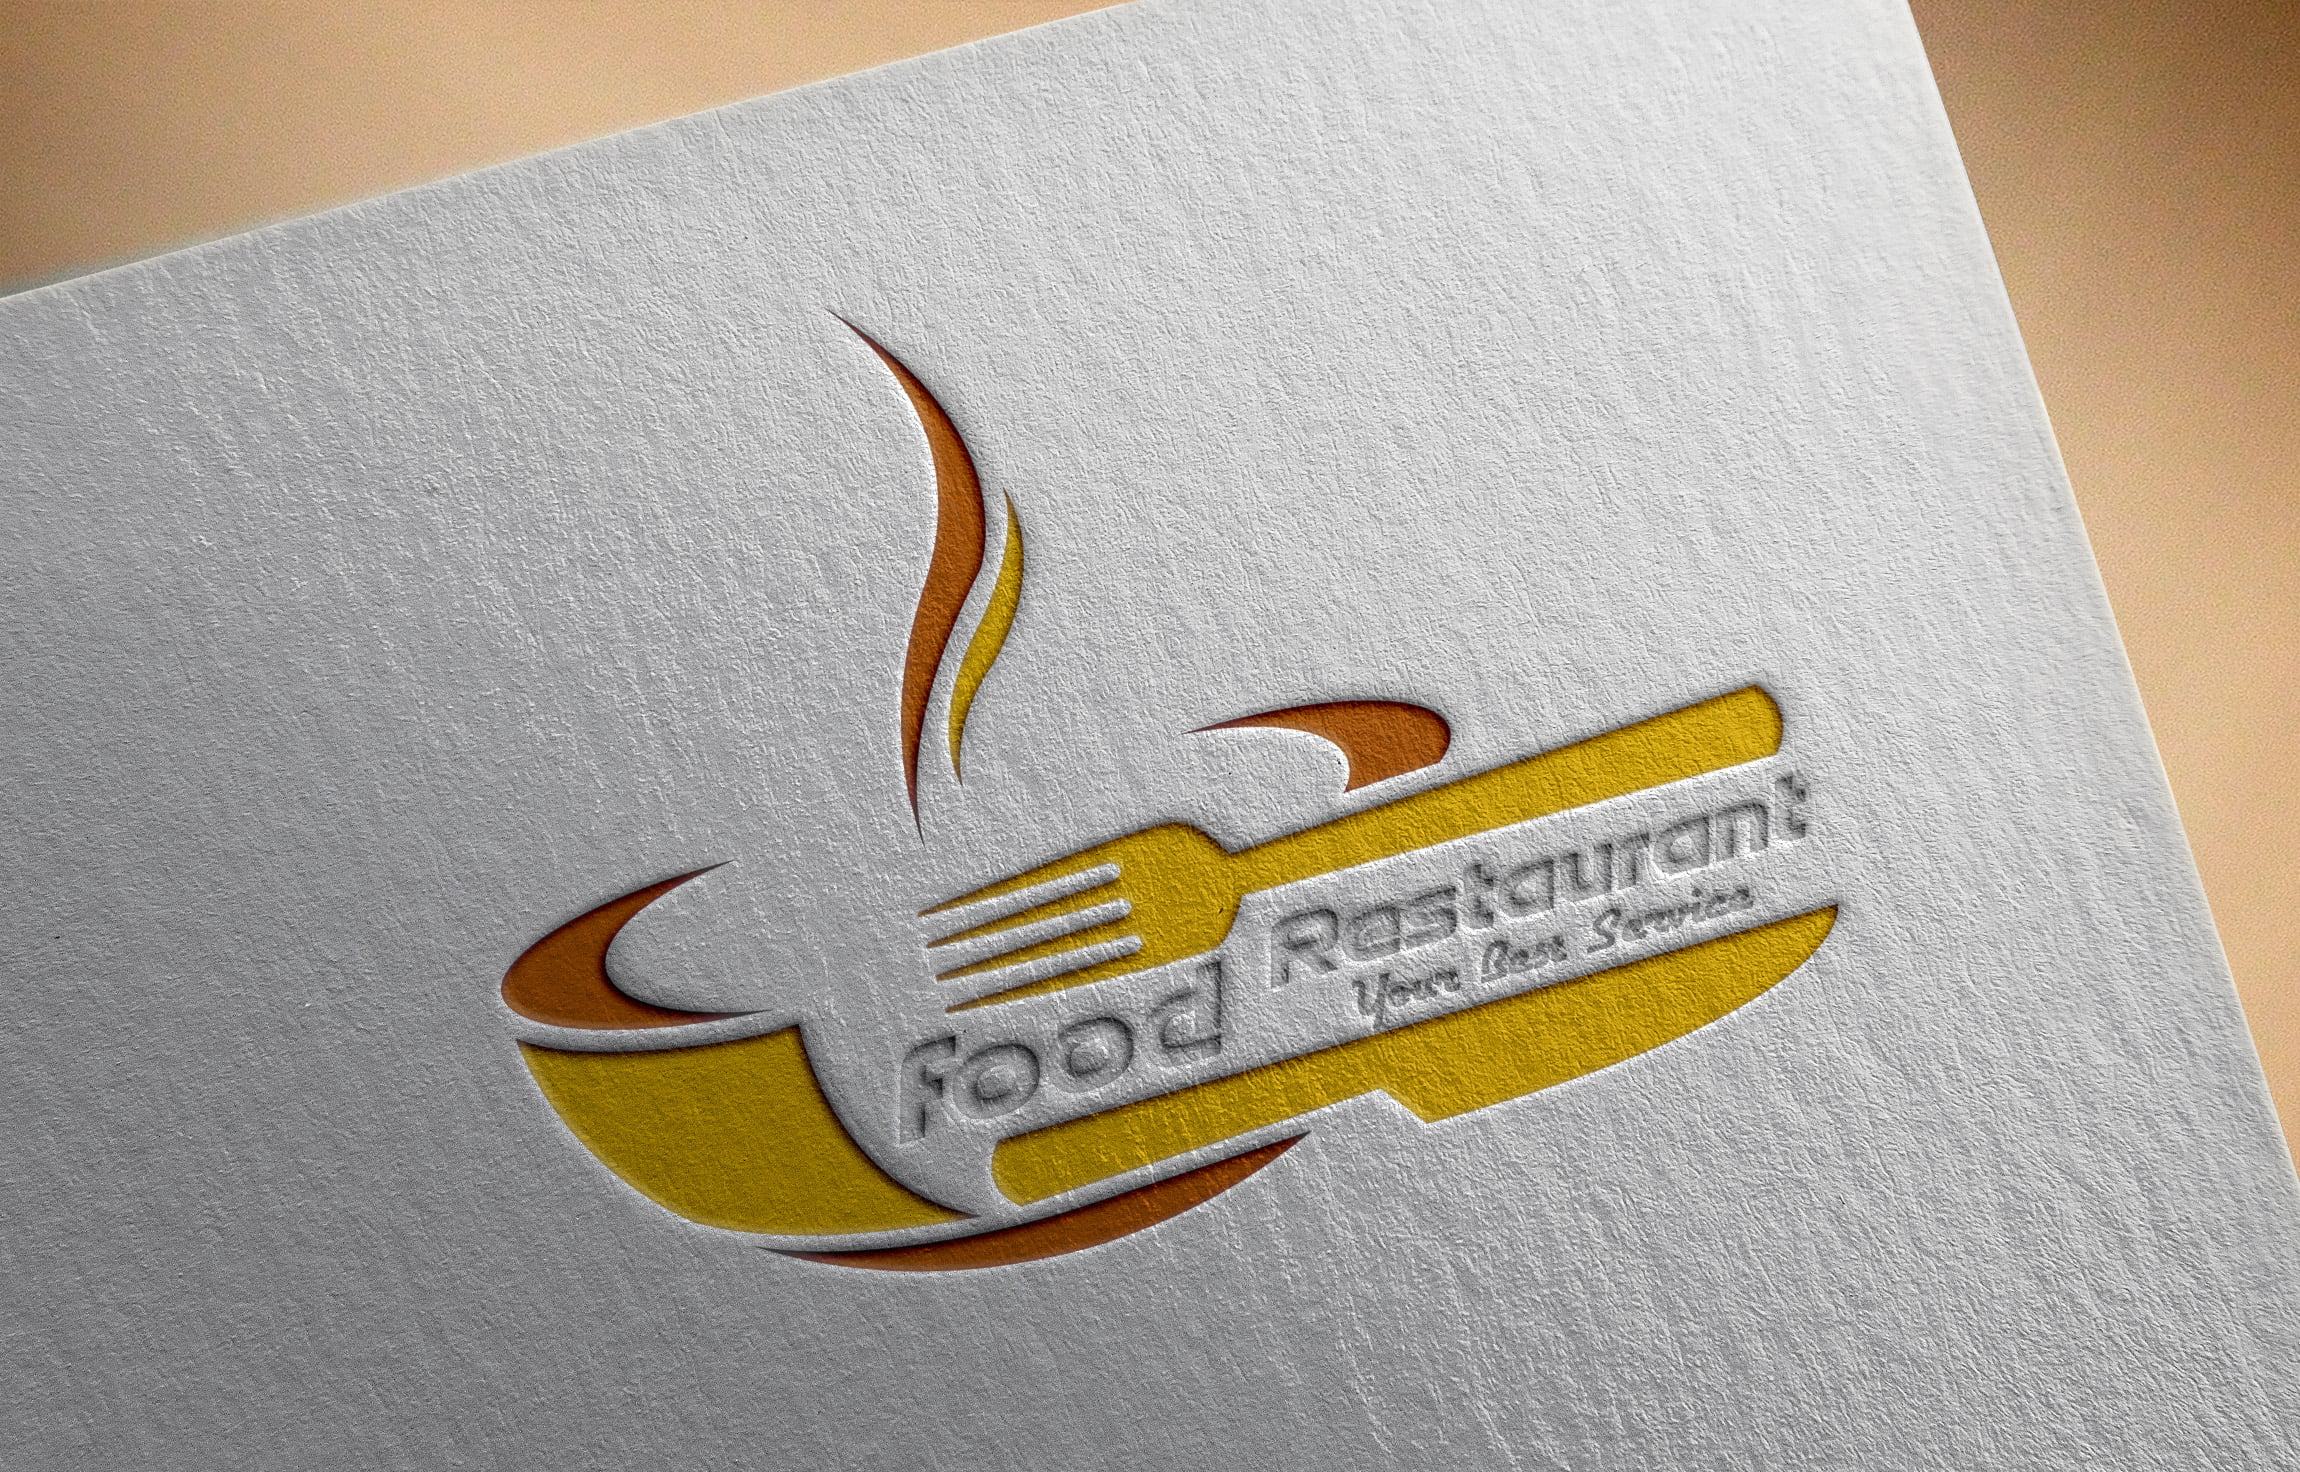 Restaurant Logo on Paper Mockup